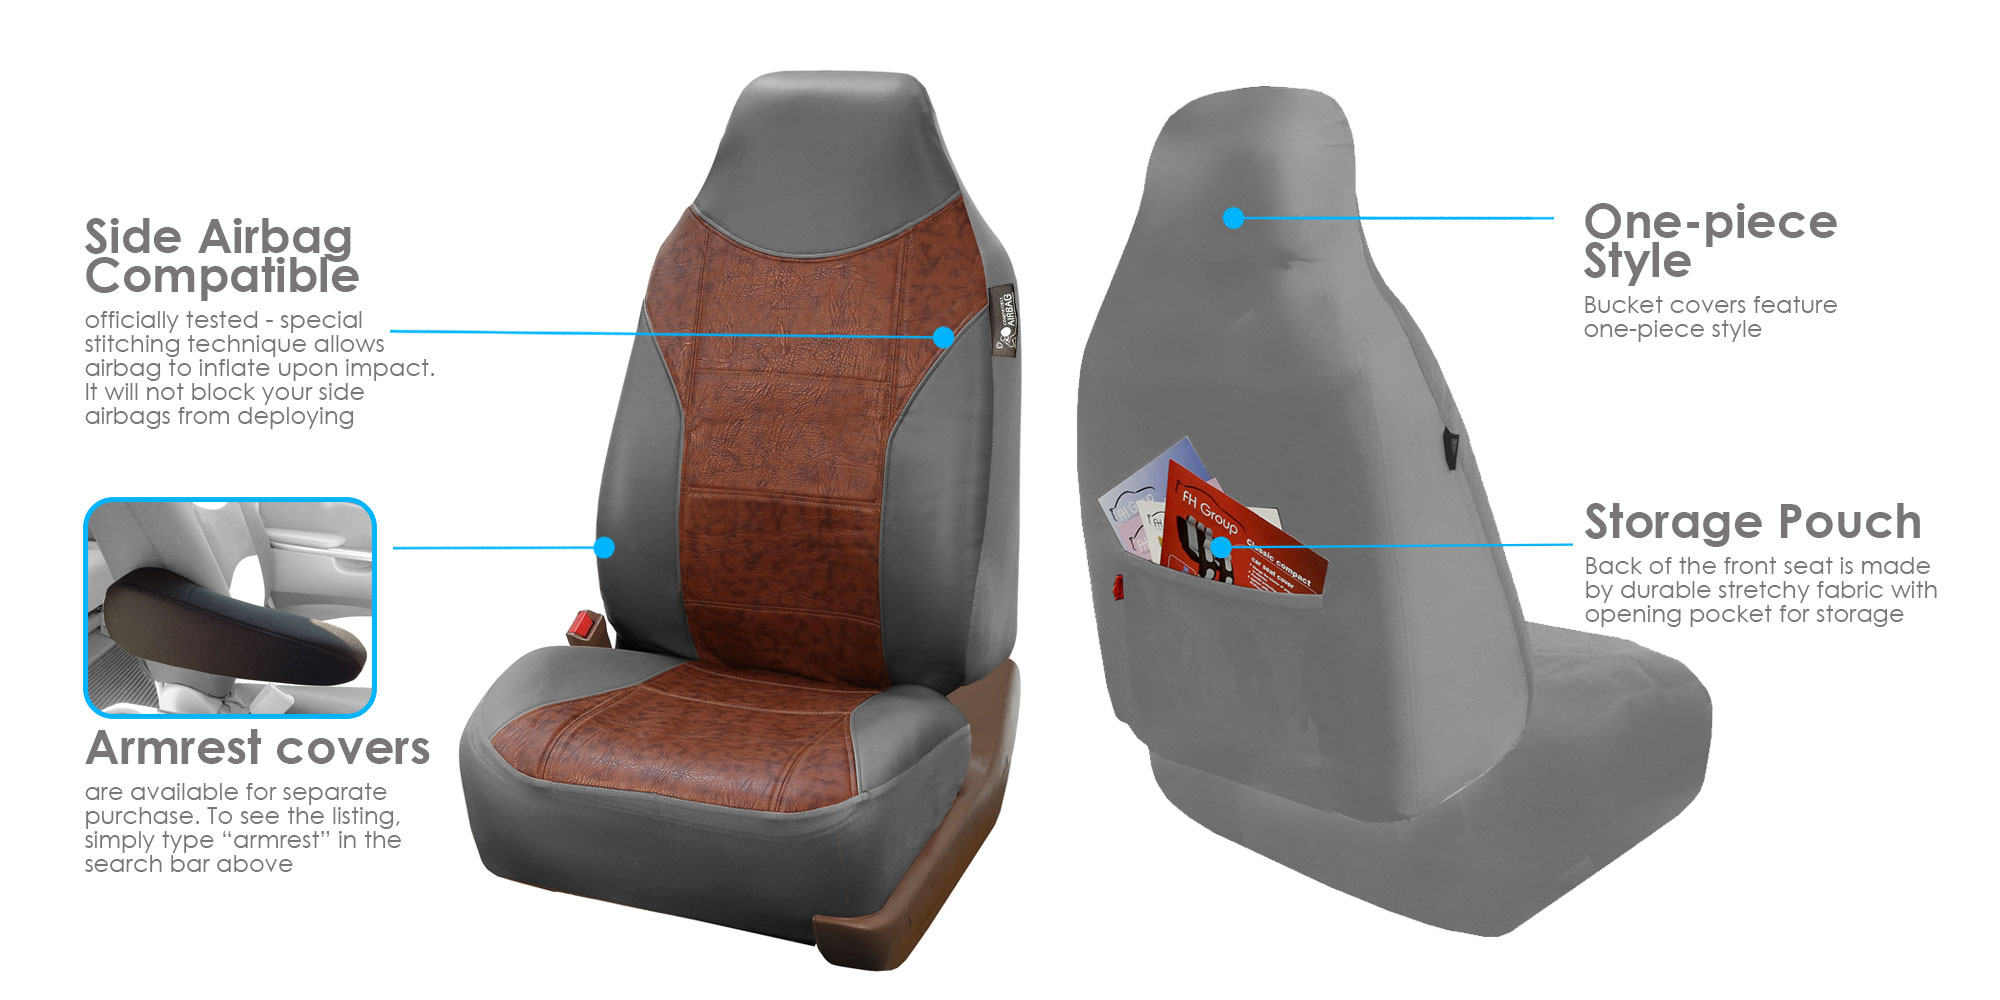 Groovy Fh Group Gray And Brown Textured Leather Seat Covers Side Airbag Compatible With Split Bench Function Full Set Dailytribune Chair Design For Home Dailytribuneorg